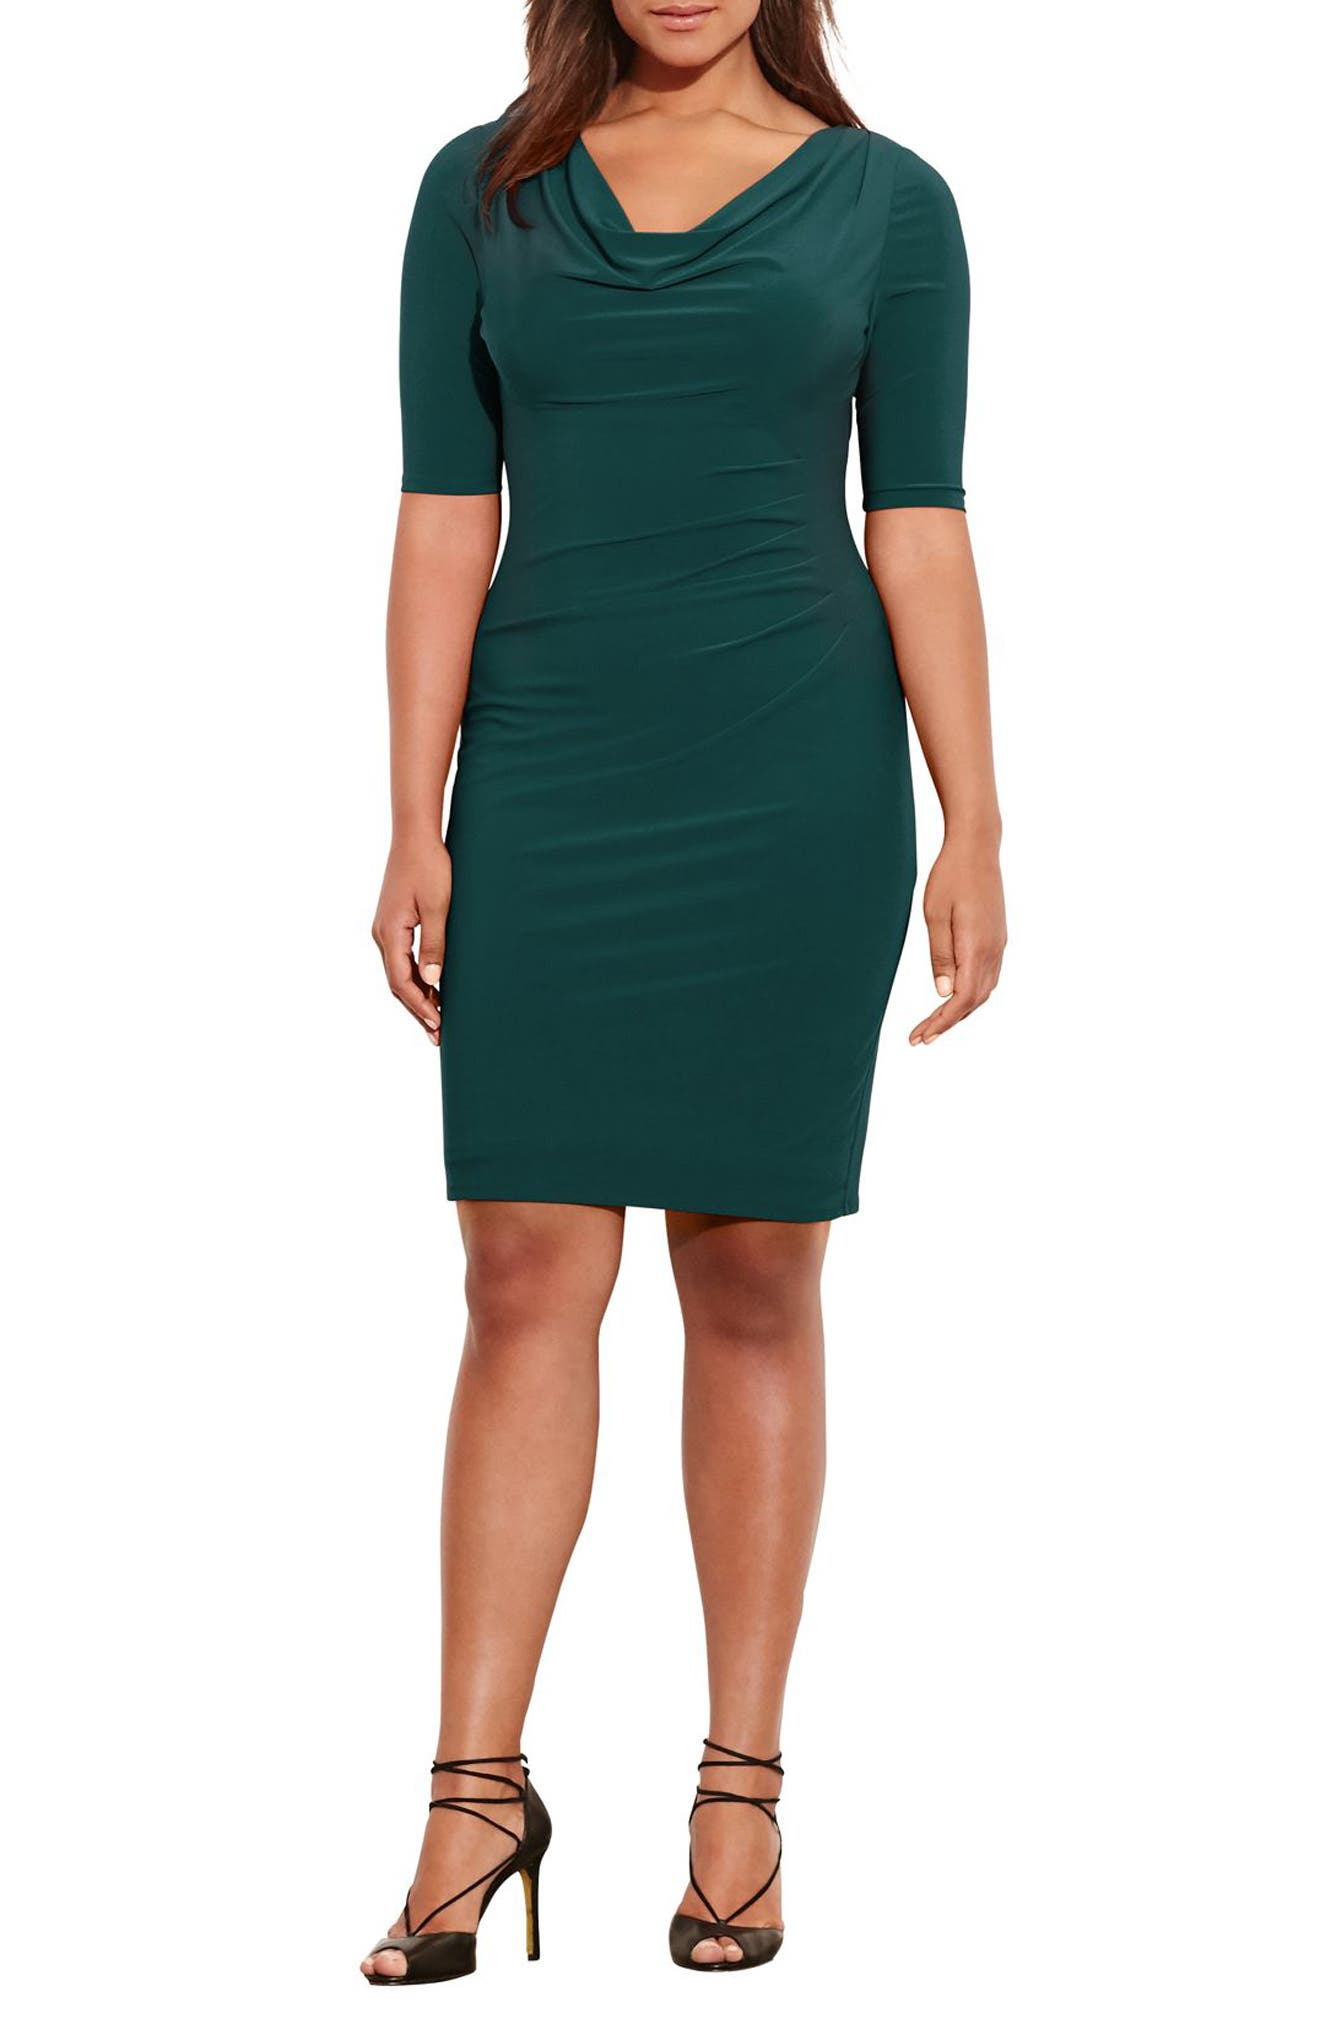 Carleton Cowl Neck Jersey Dress,                         Main,                         color, Woodland Green